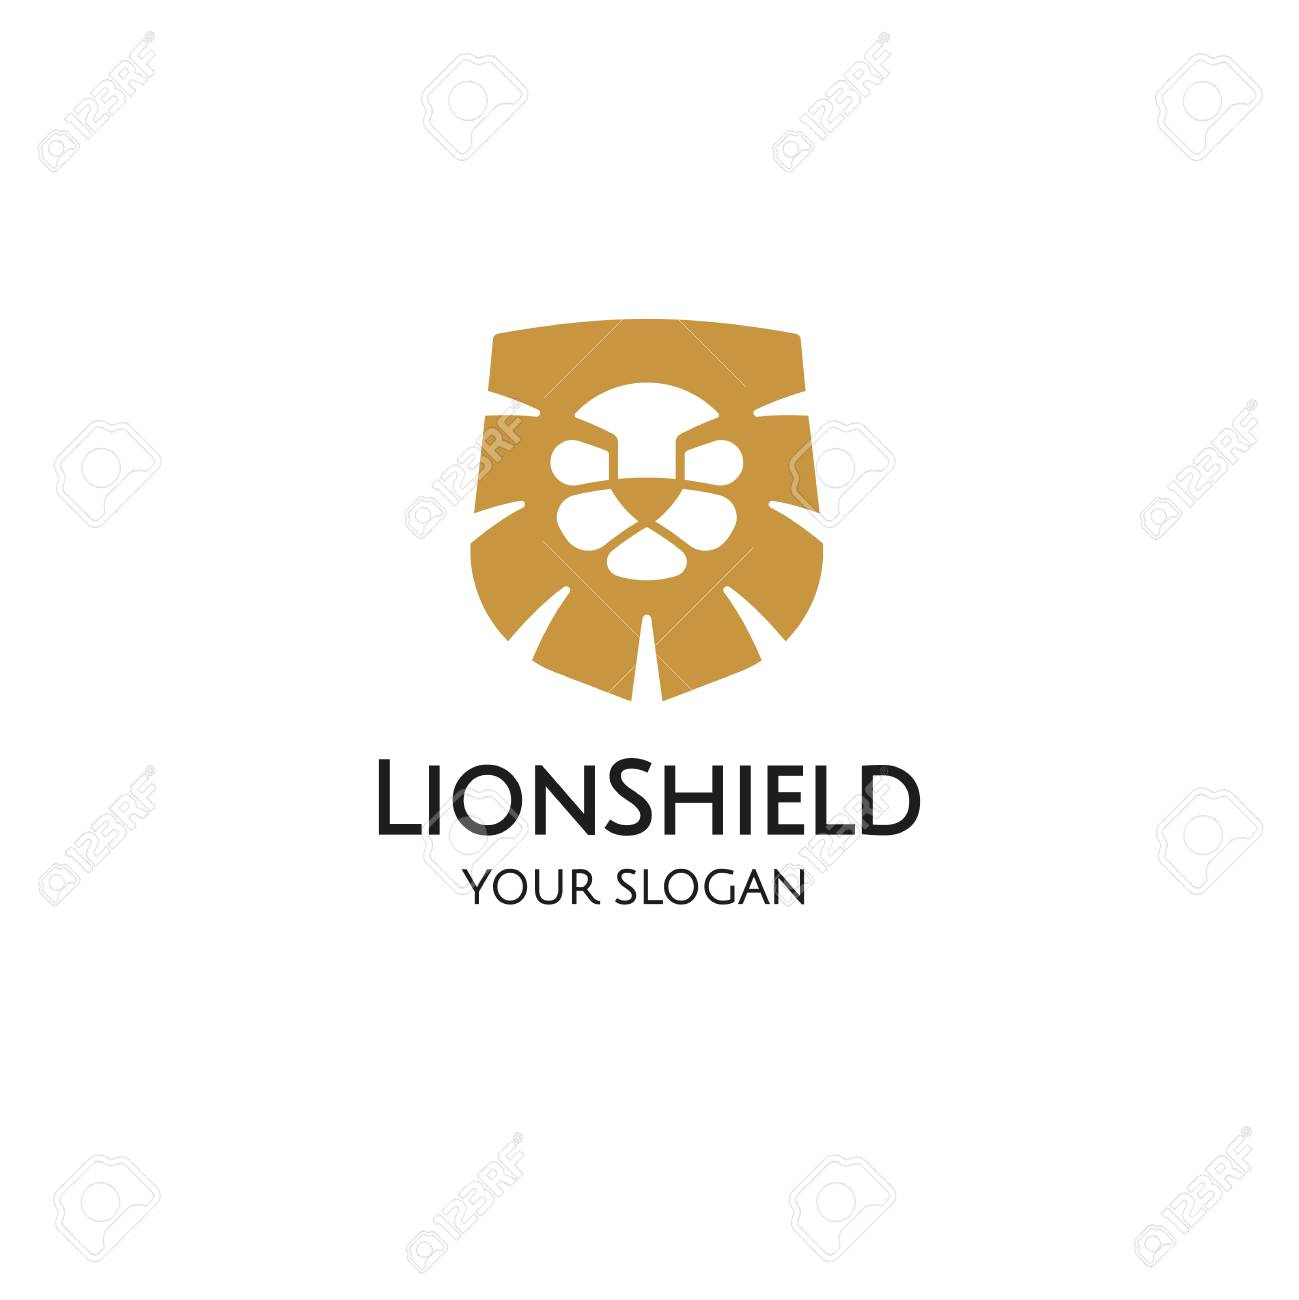 Lion Shield Design Template Royalty Free Cliparts, Vectors, And ...